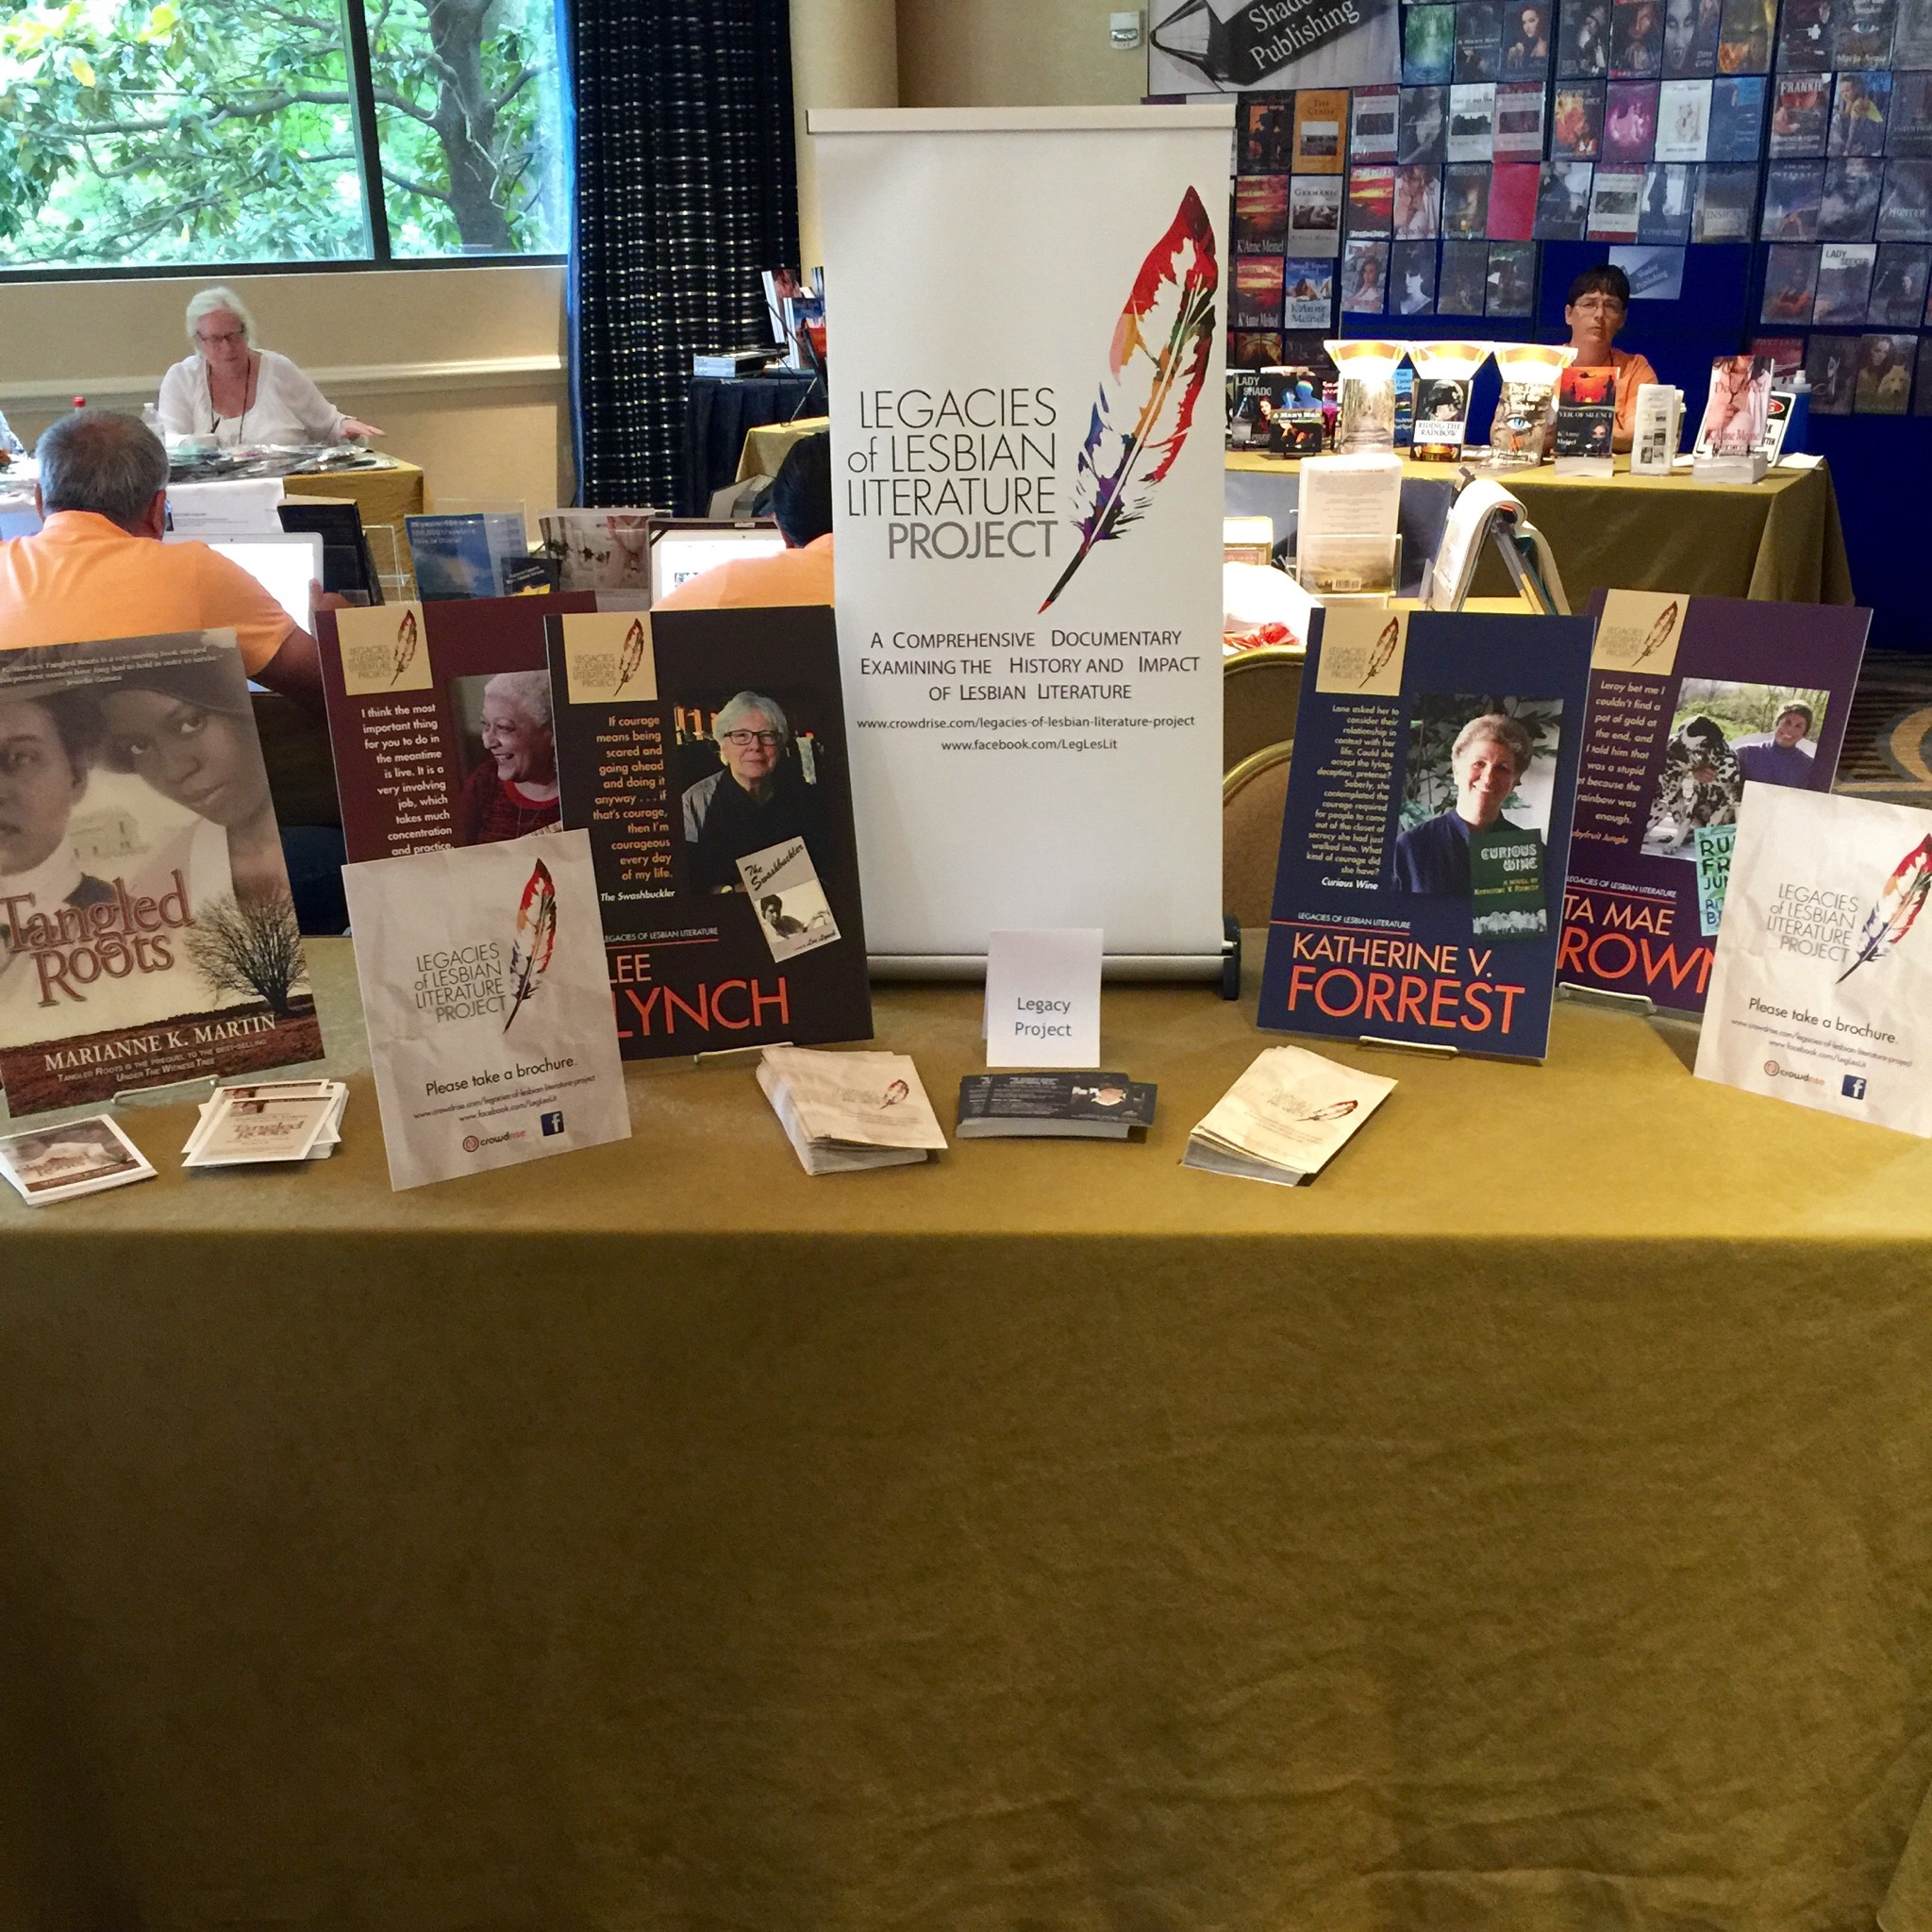 Legacies of Lesbian Literature Project has a presence at the Golden Crown Literary Society's 2016 Conference